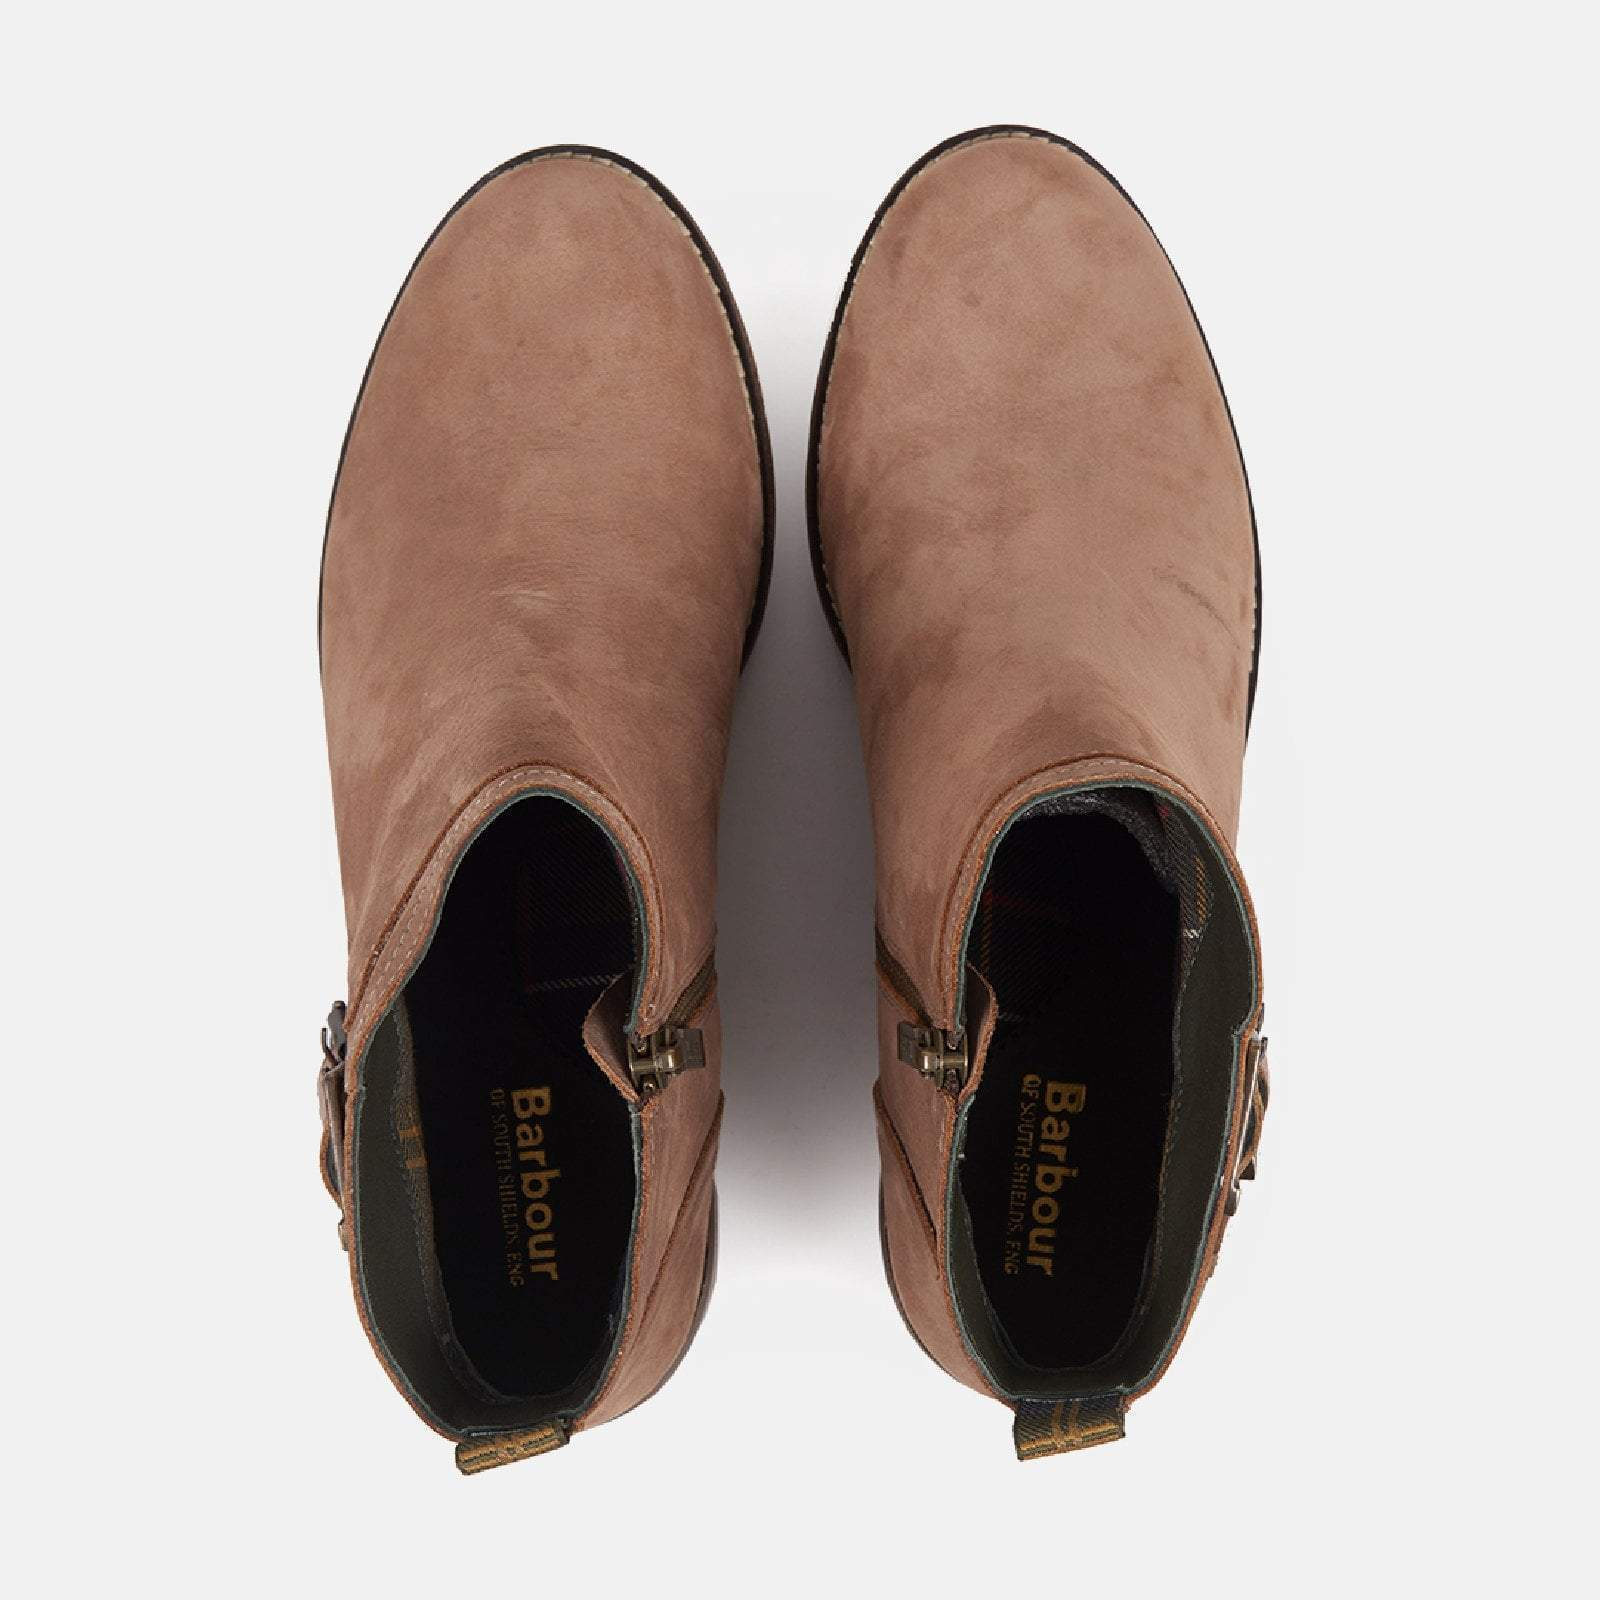 Barbour Footwear Sarah Taupe